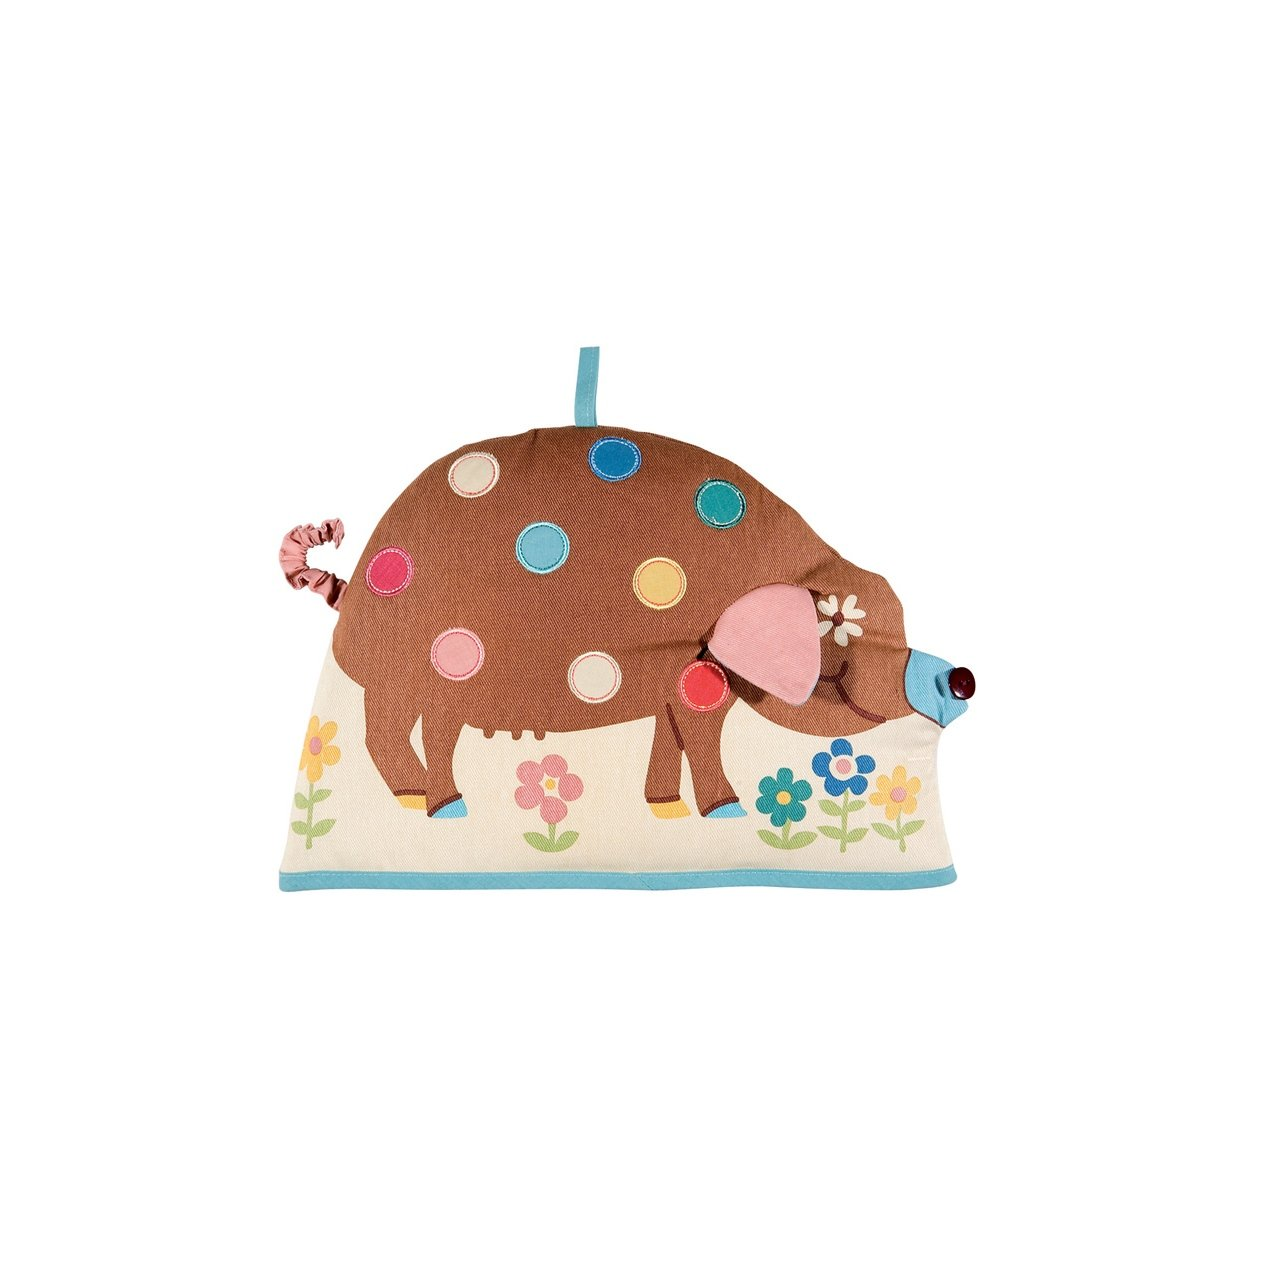 Ulster Weavers Spotty Pig Shaped Decorative Tea Cosy